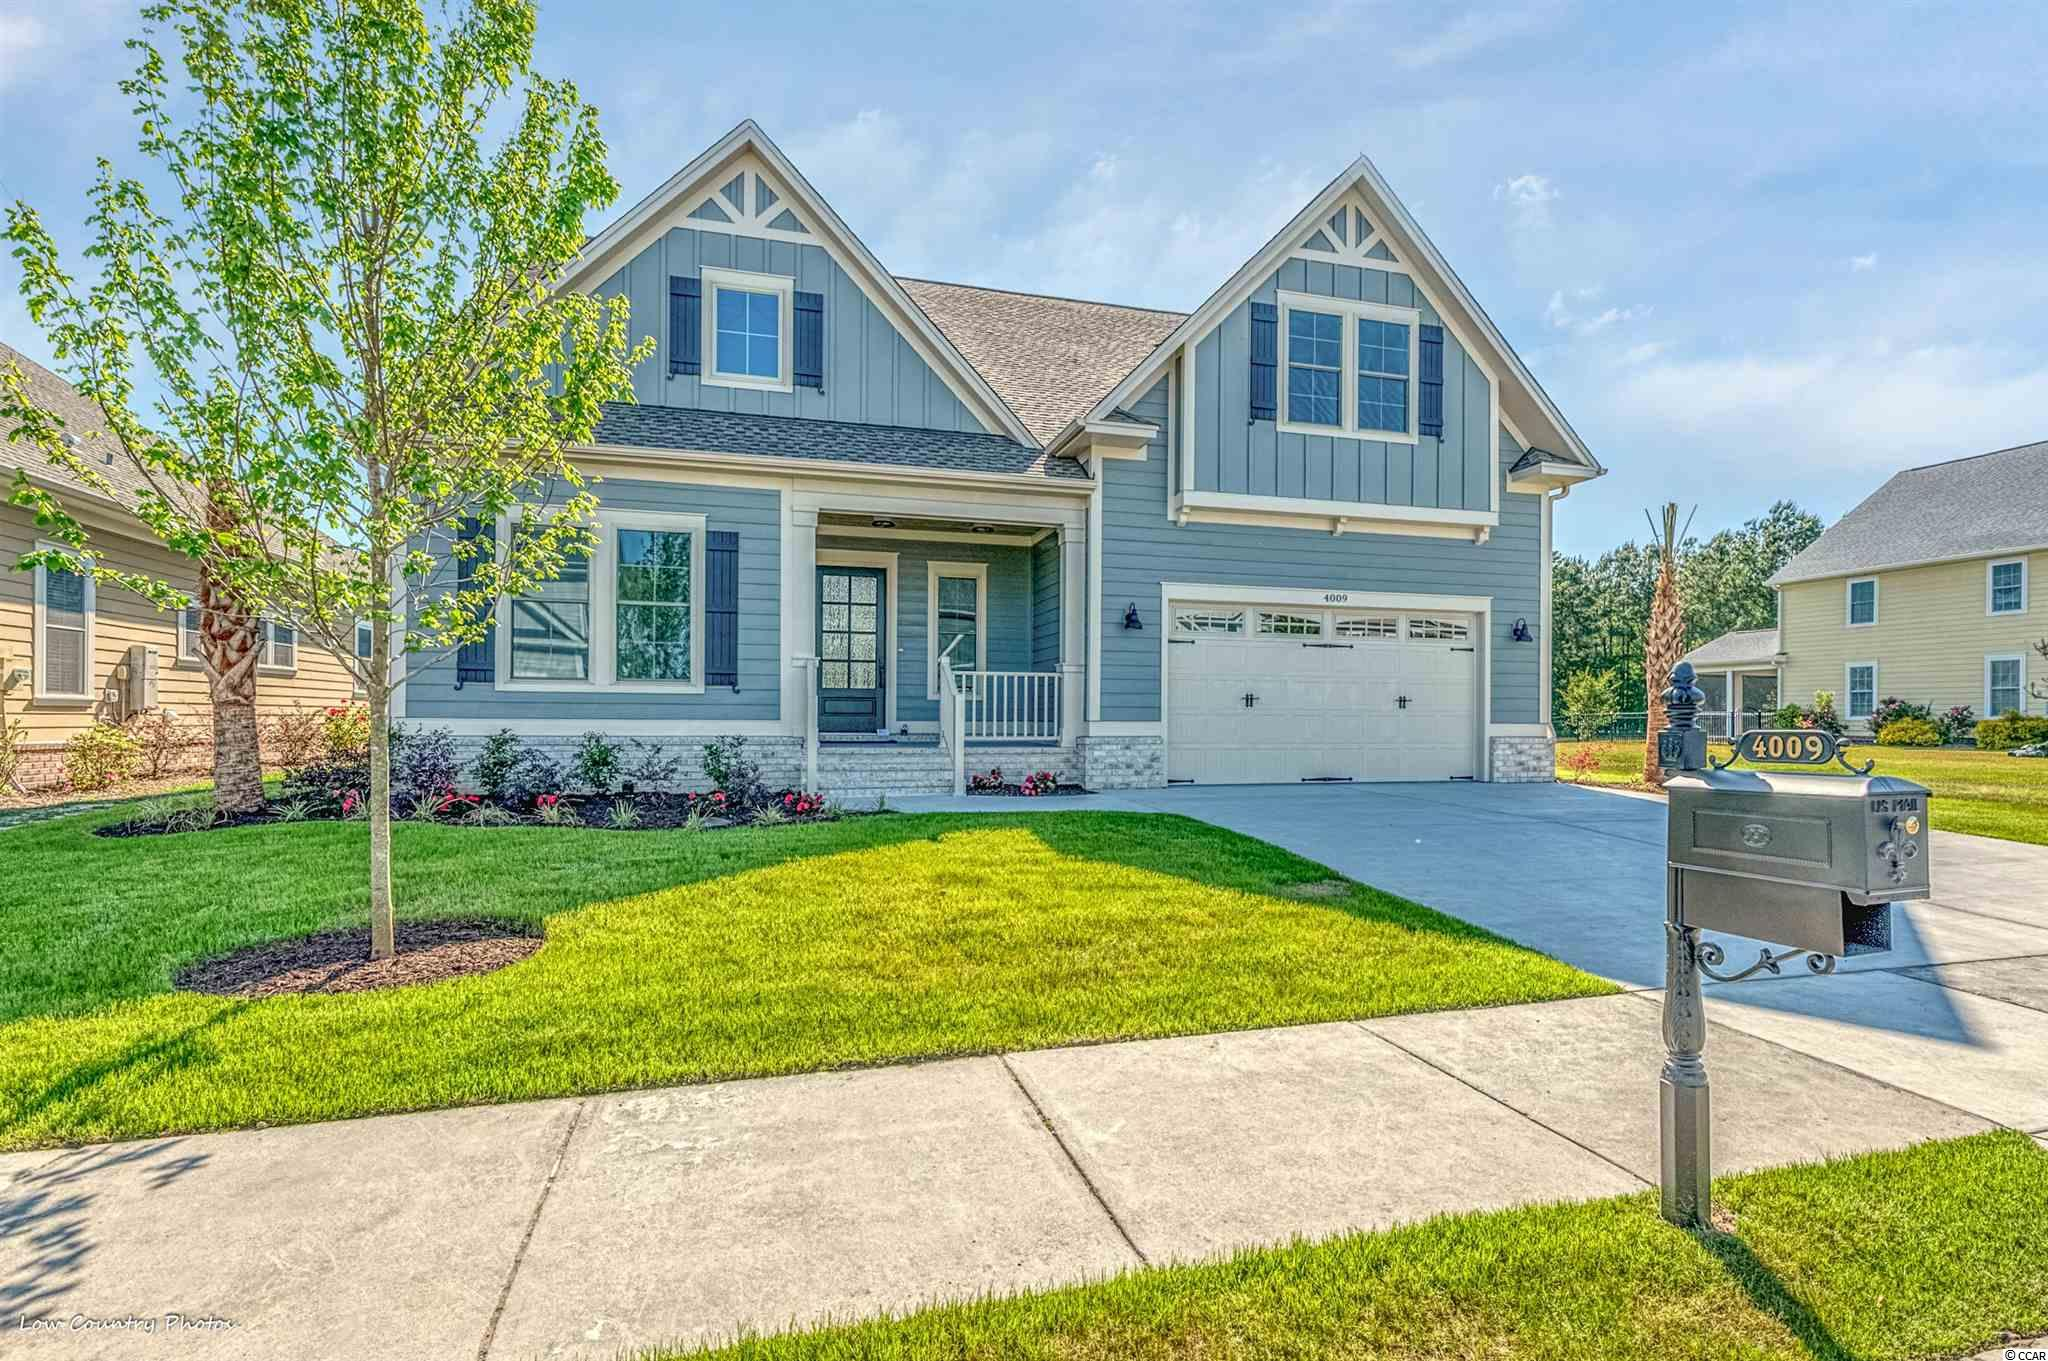 Awesome construction home in Waterway Palms Plantation. All the upmarket features today's home owners are looking for. The first floor offers an owners suite, guest suite, and office. Completion Date Mid May 2021. Custom built-ins, screen porch, massive bonus room, and many more features will want to make you call this HOME! Waterway Palms Plantation is a gated planned residential community located on the Intercostal Waterway (ICW). Situated inCarolina Forest Waterway Palms is perfectly located near shopping, grocery stores, and other daily goods and service vendors. Only a short 6-mile drive to the wide, friendly beaches, and the Atlantic Ocean Waterway Palms offers the best of both land and sea.